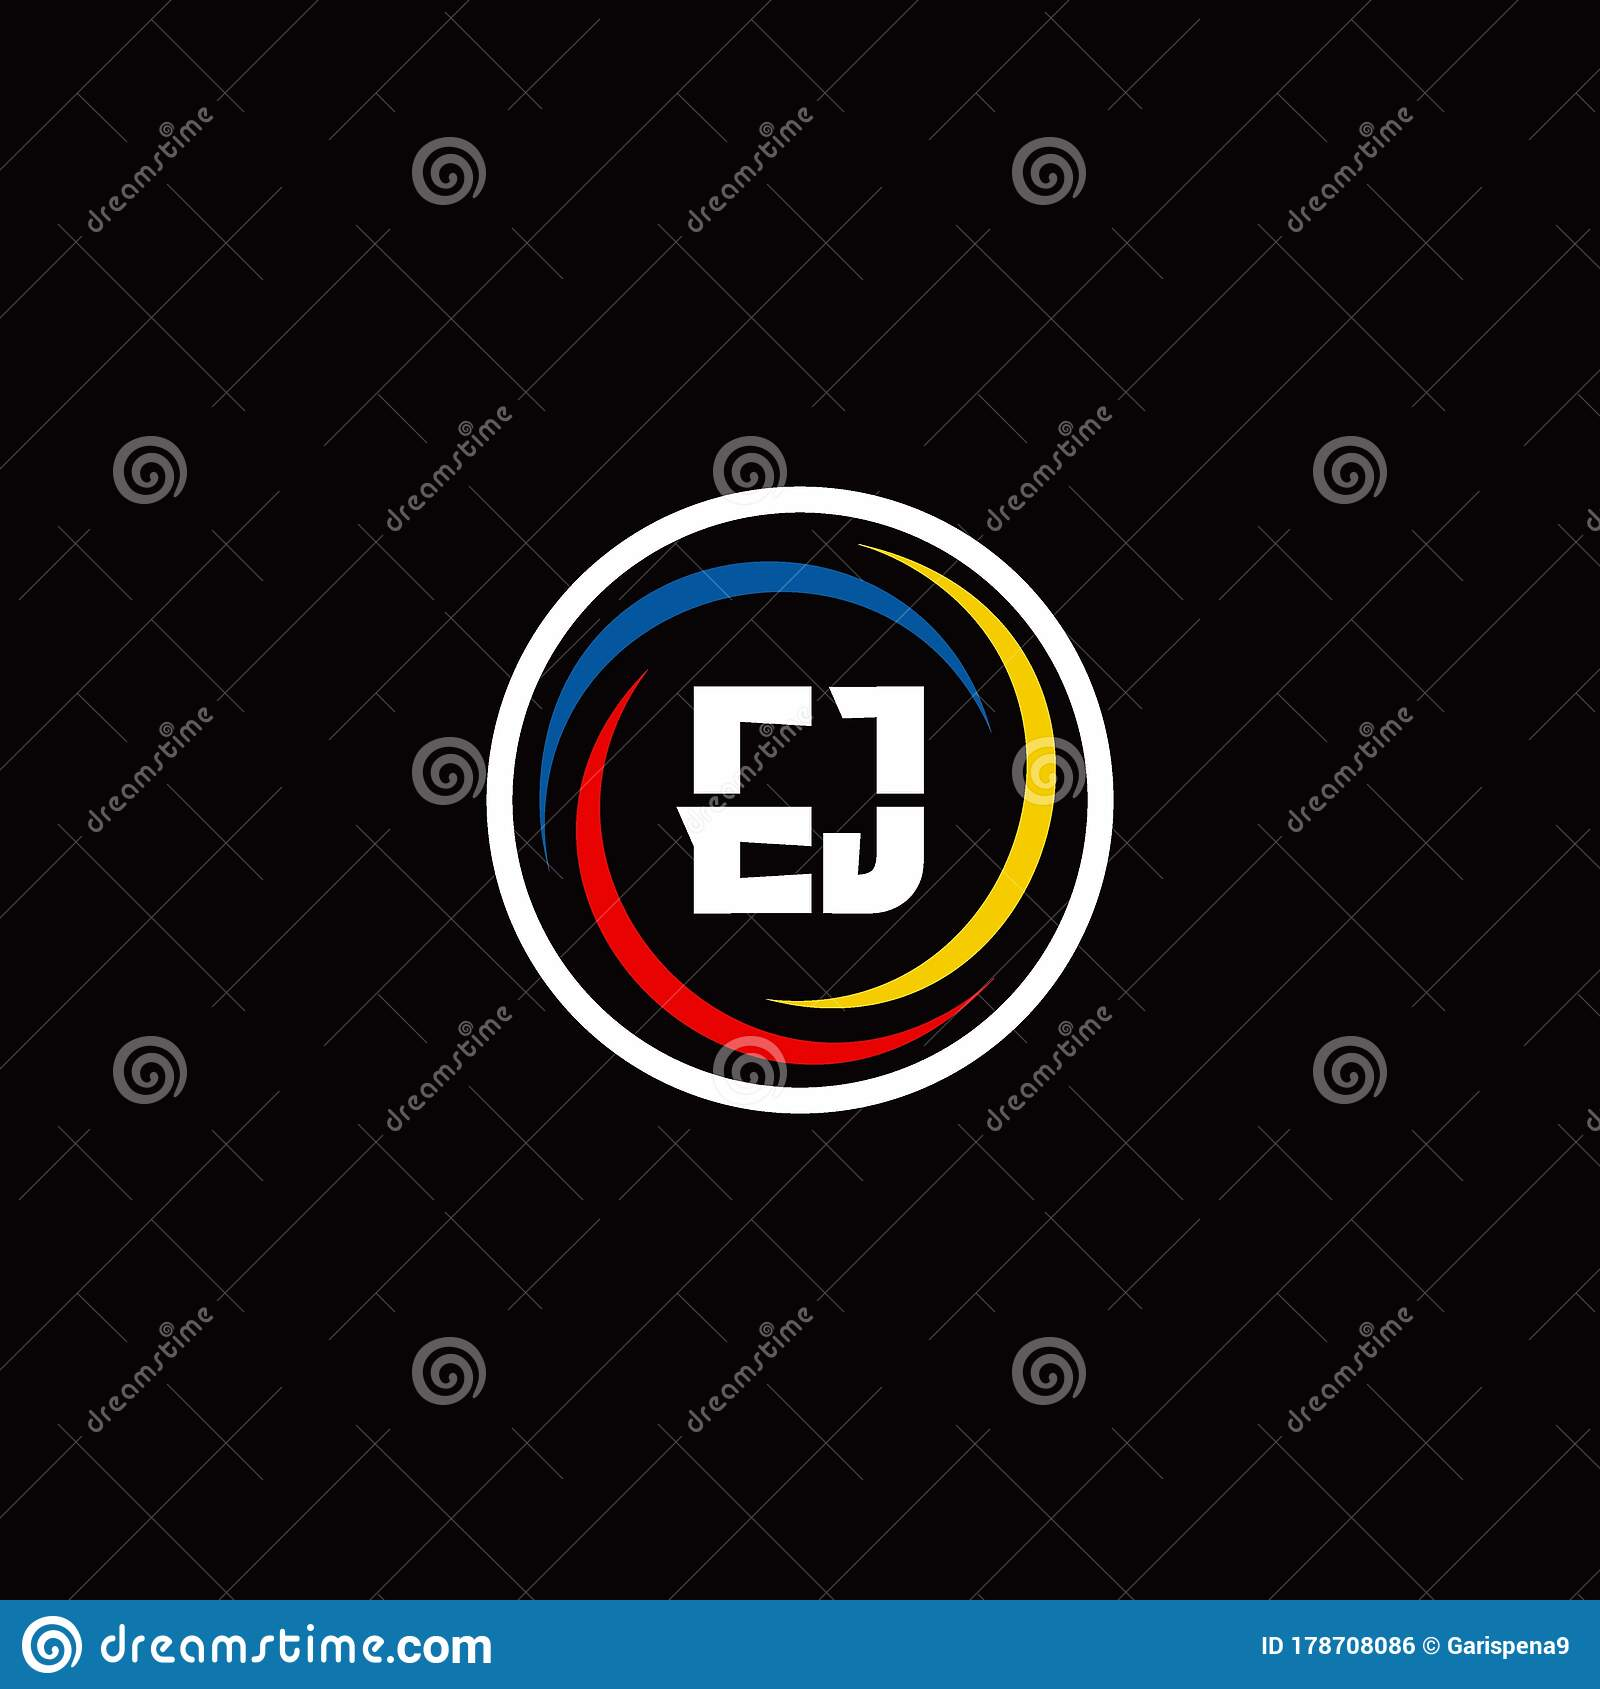 Ej Monogram Logo Isolated On Circle Shape With 3 Slash Colors Rounded Stock Vector Illustration Of Initial Letter 178708086